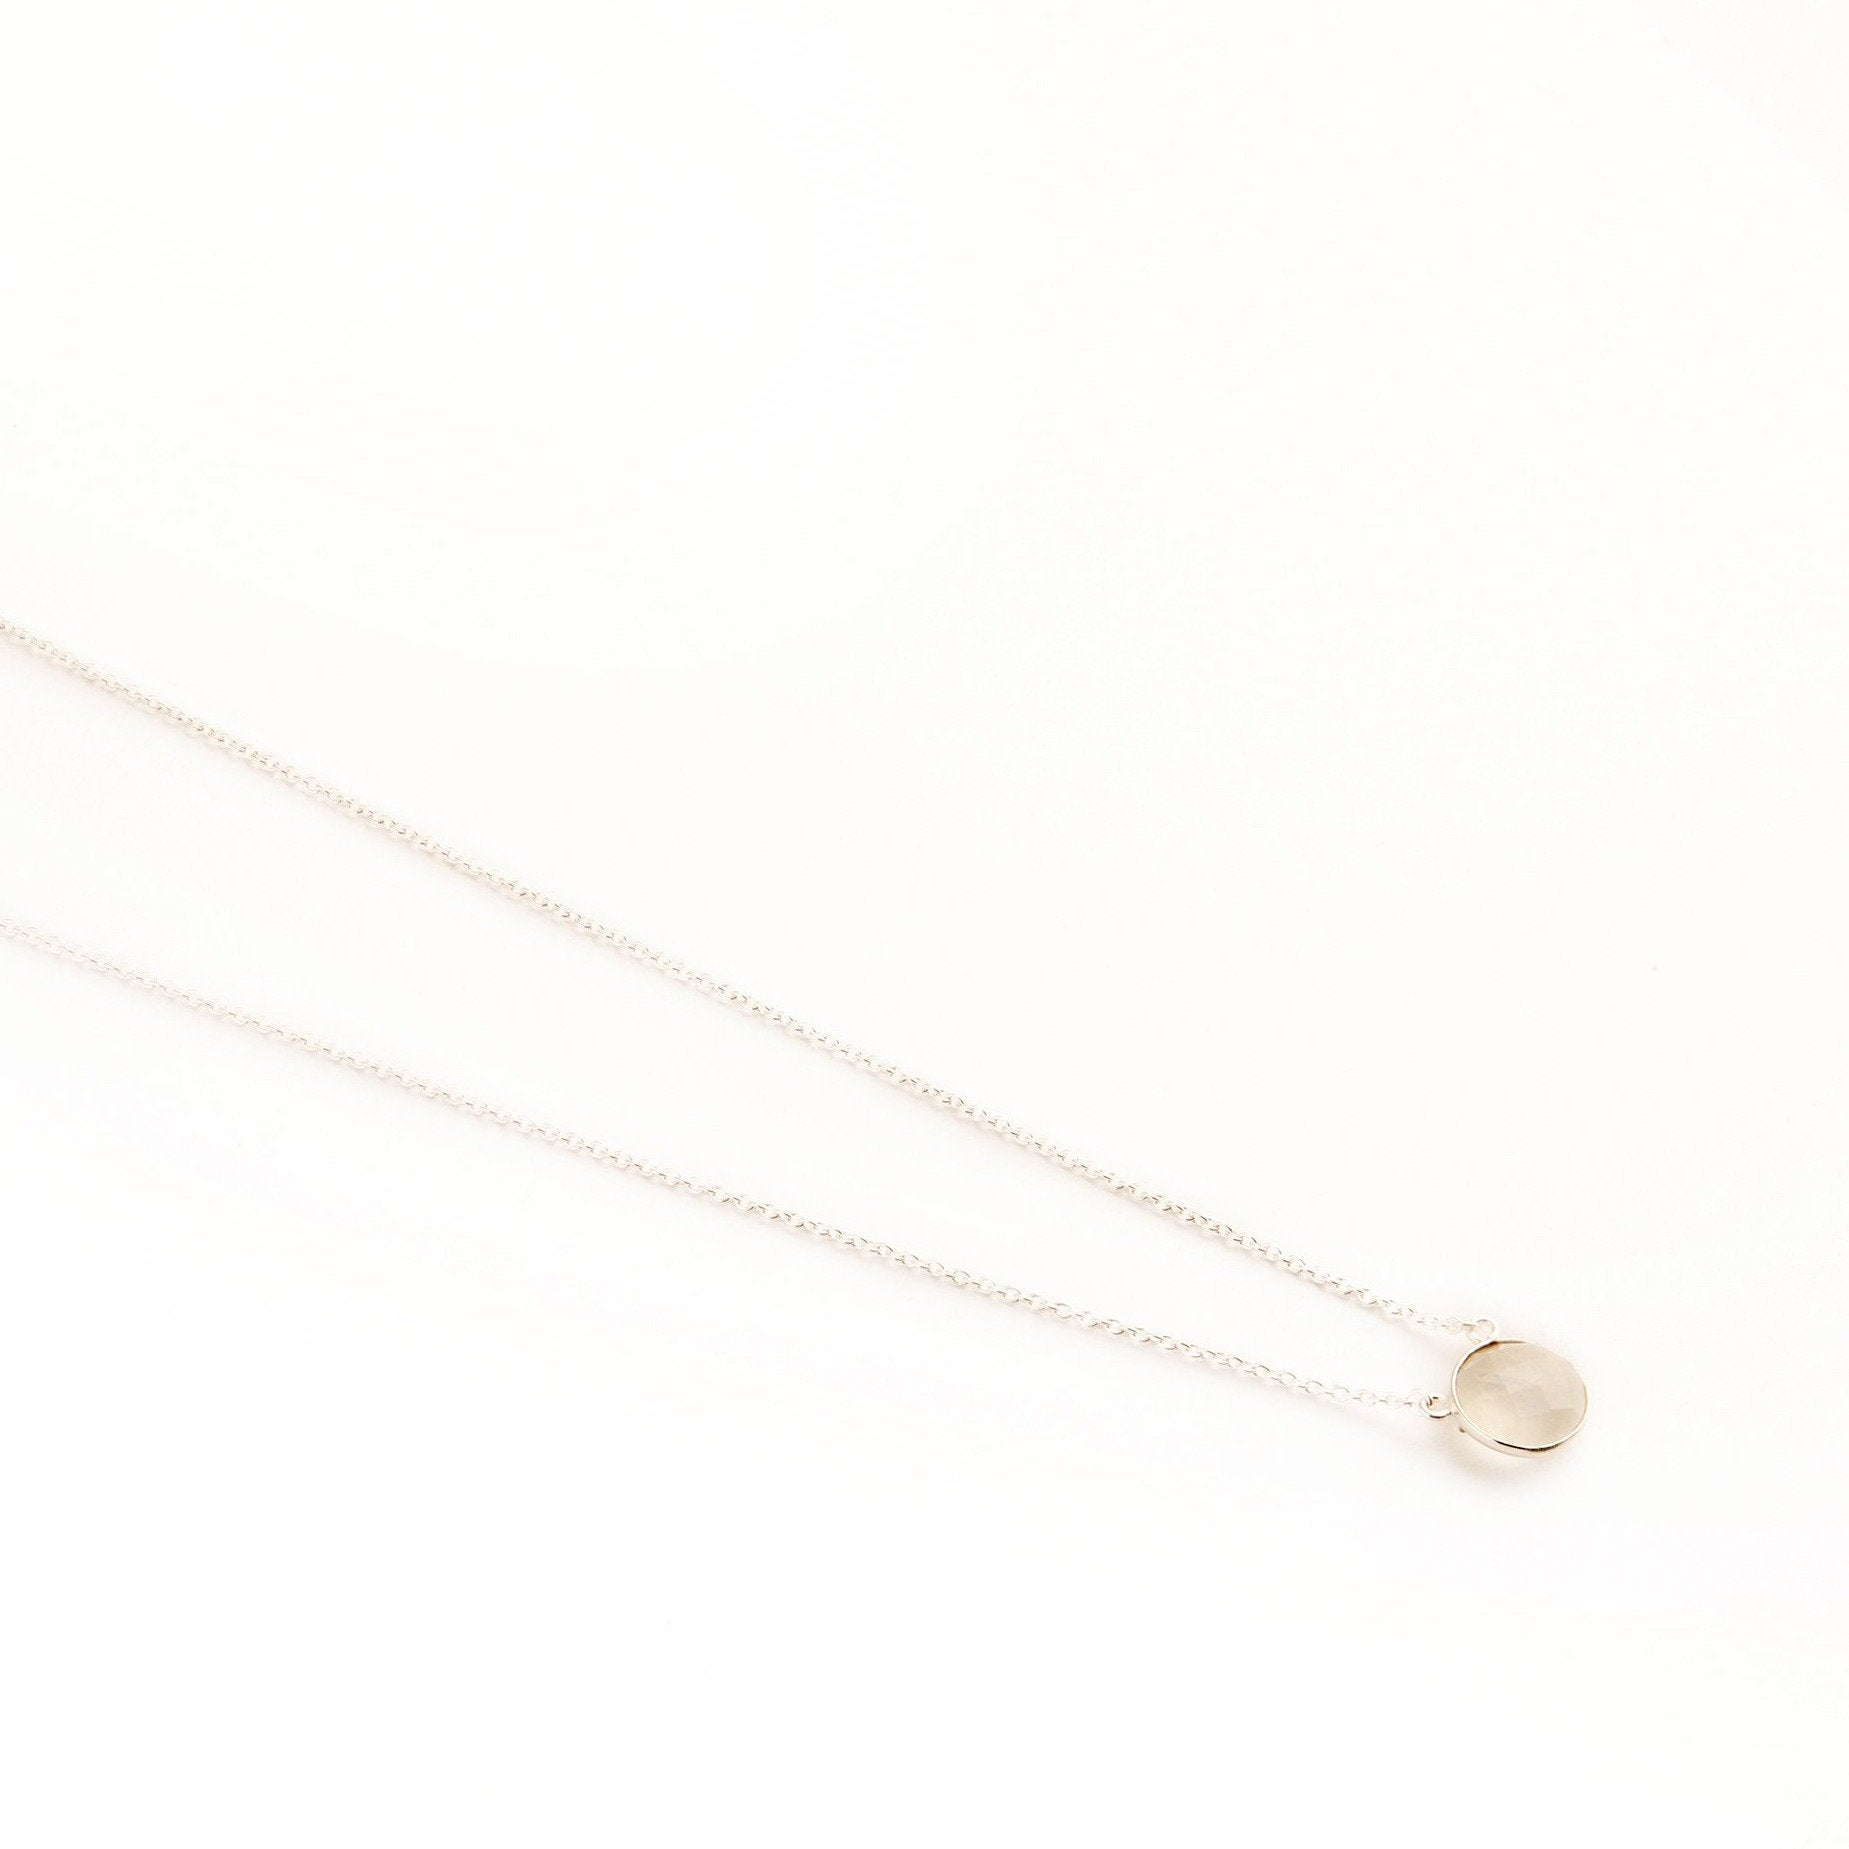 Adele silver round chain in Rainbow moonstone - Neckpieces